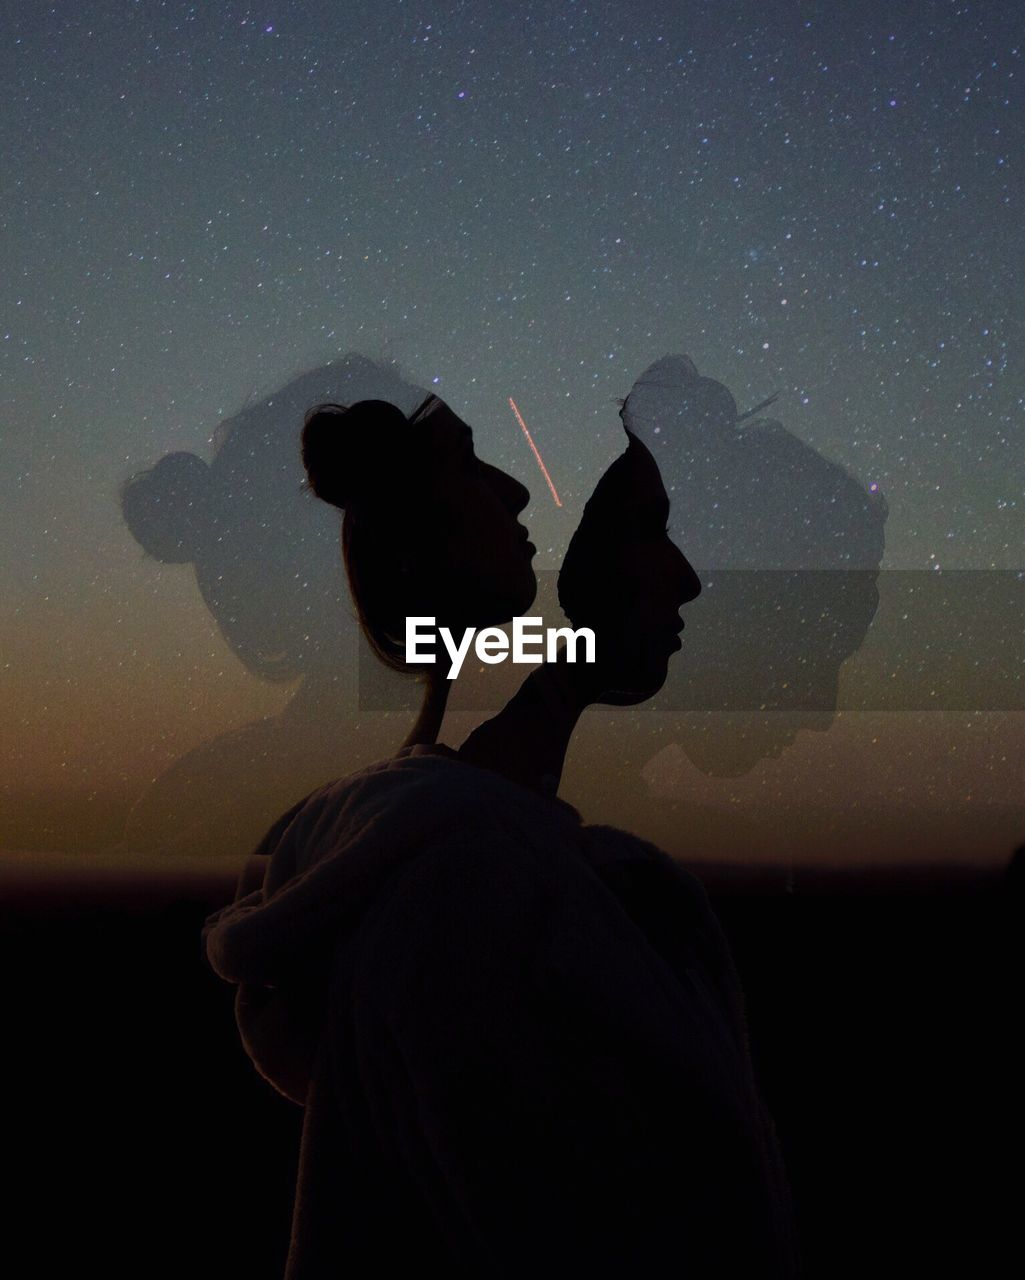 Multiple Image Of Silhouette Woman Against Star Field At Night